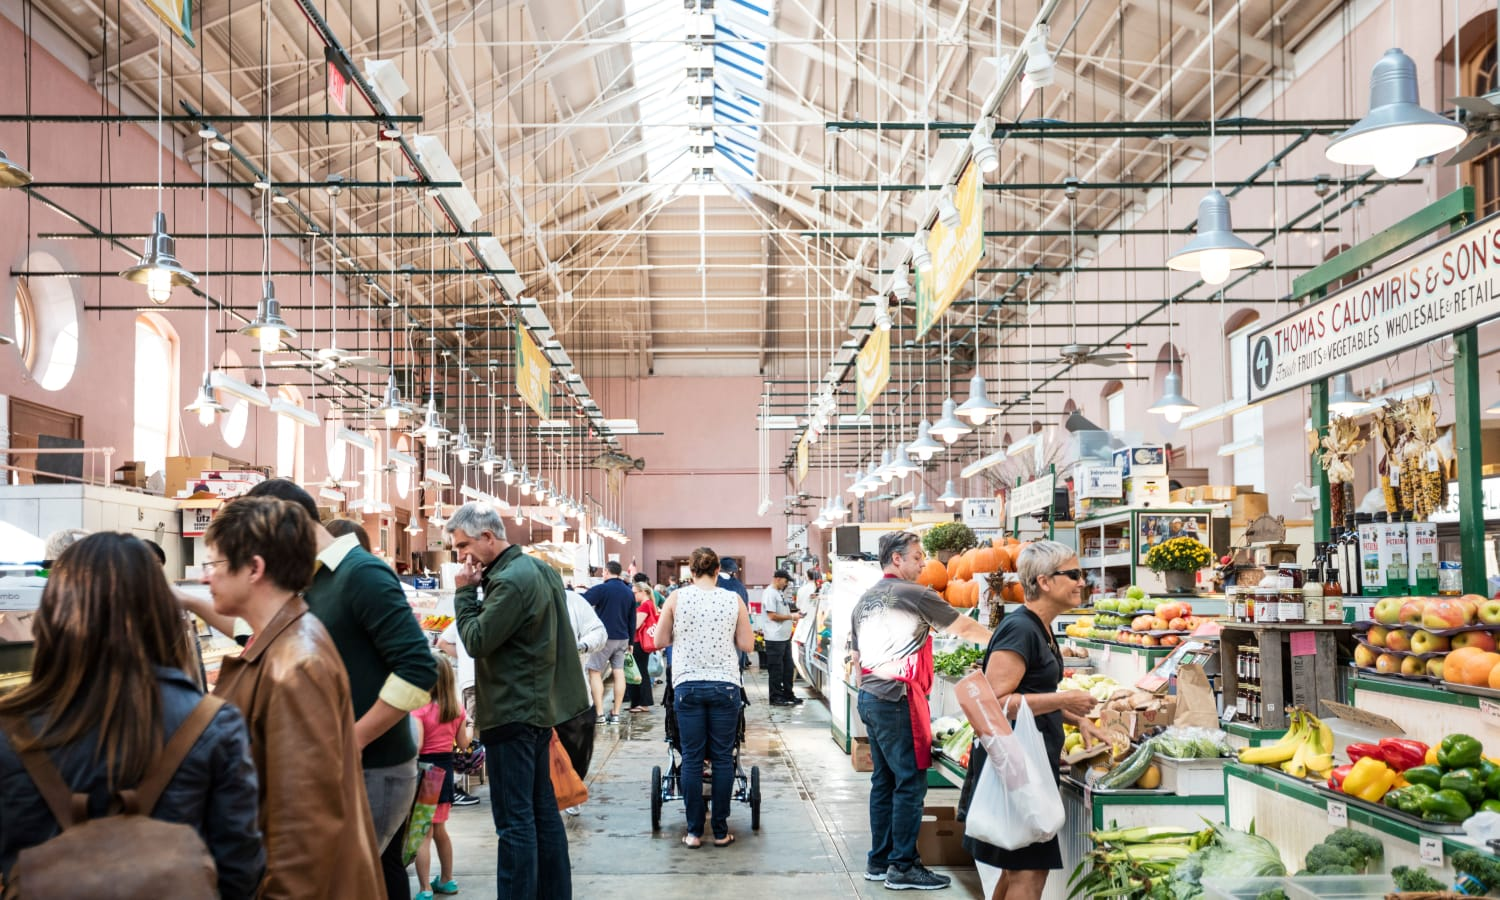 Huge open-air farmers market near The Bixby in Washington, District of Columbia